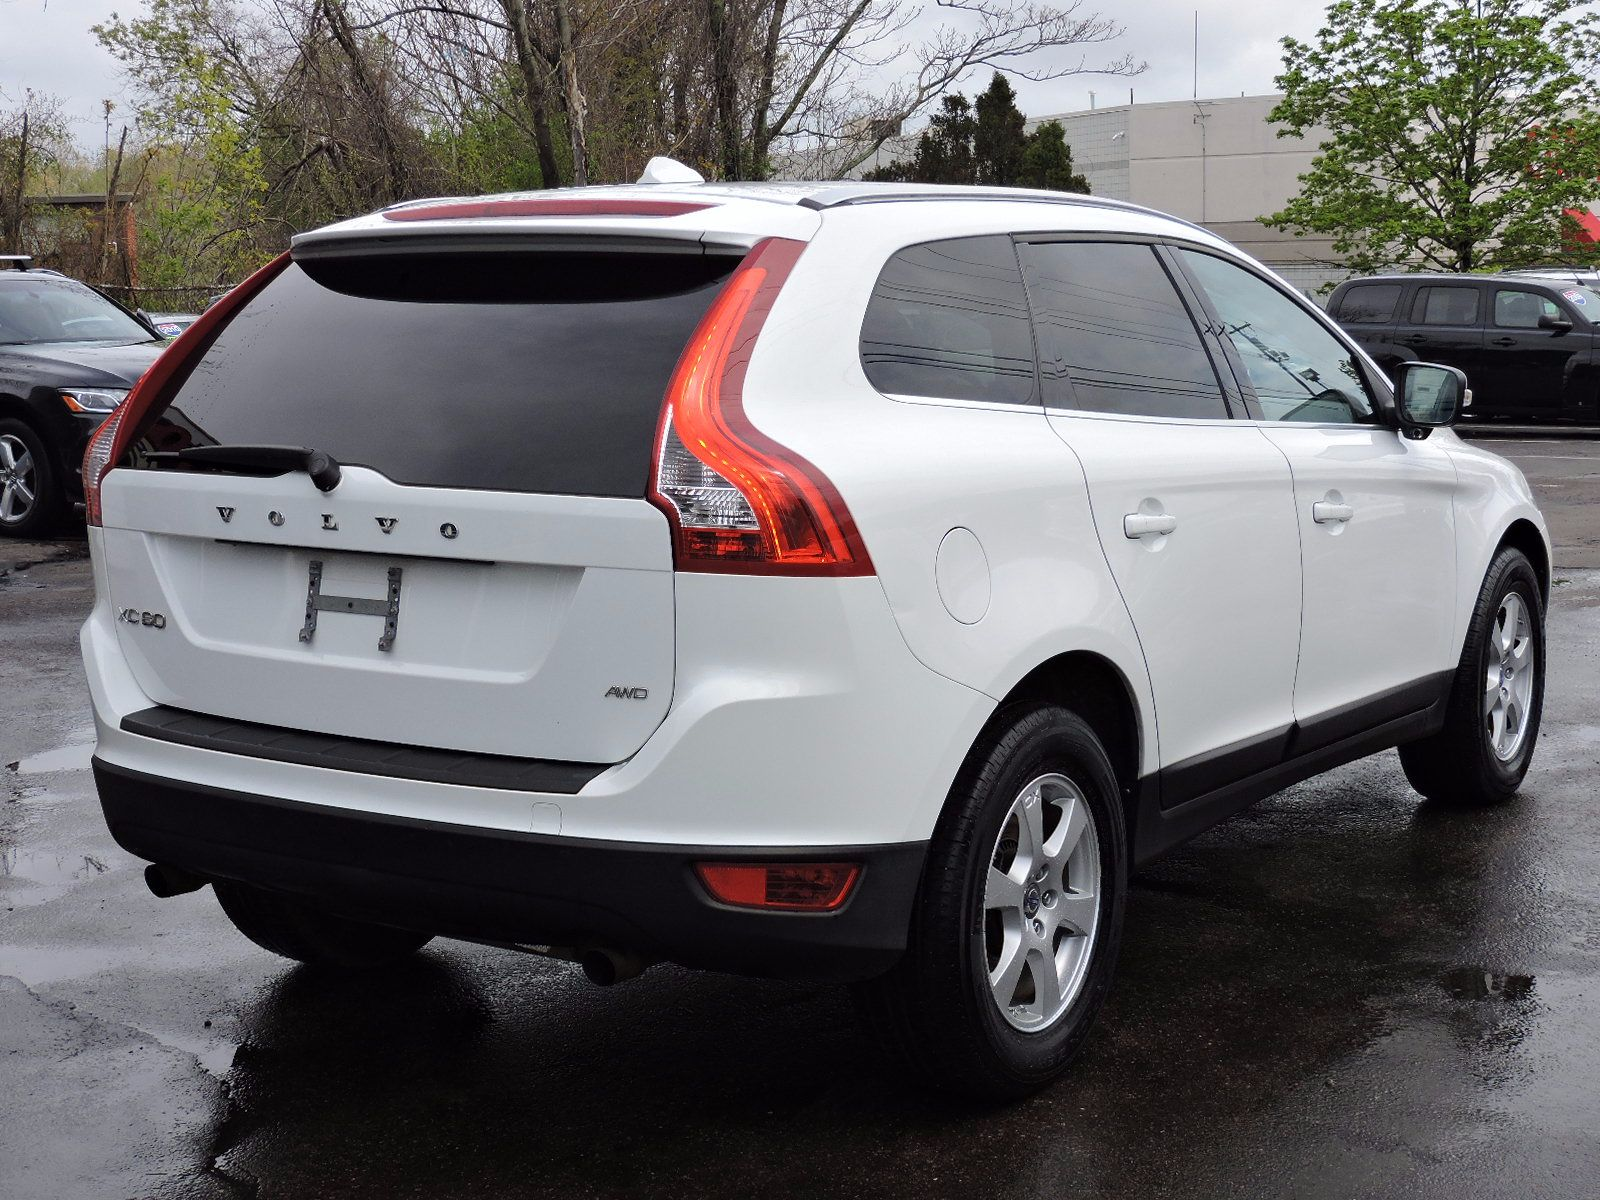 2011 Volvo XC60 - All Wheel Drive